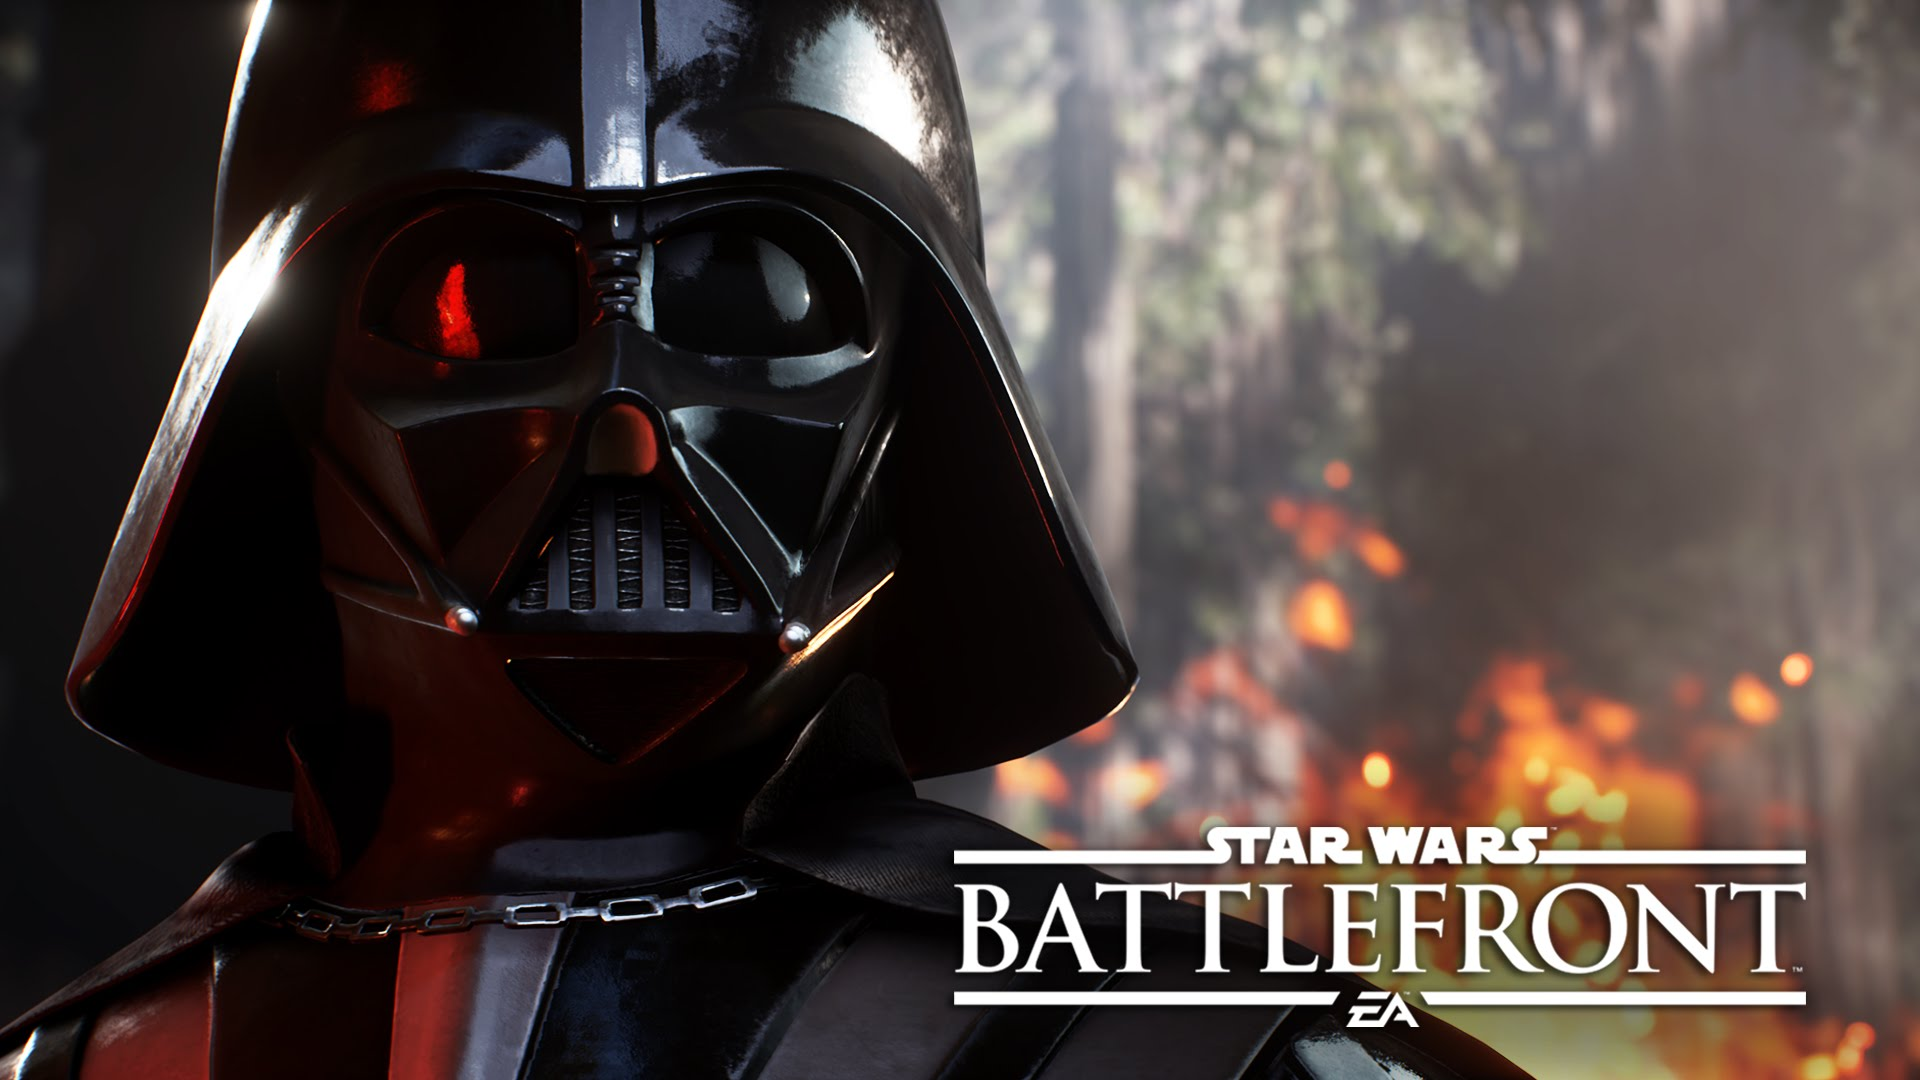 STAR WARS Battlefront II RU/ENG + GUARANTEE